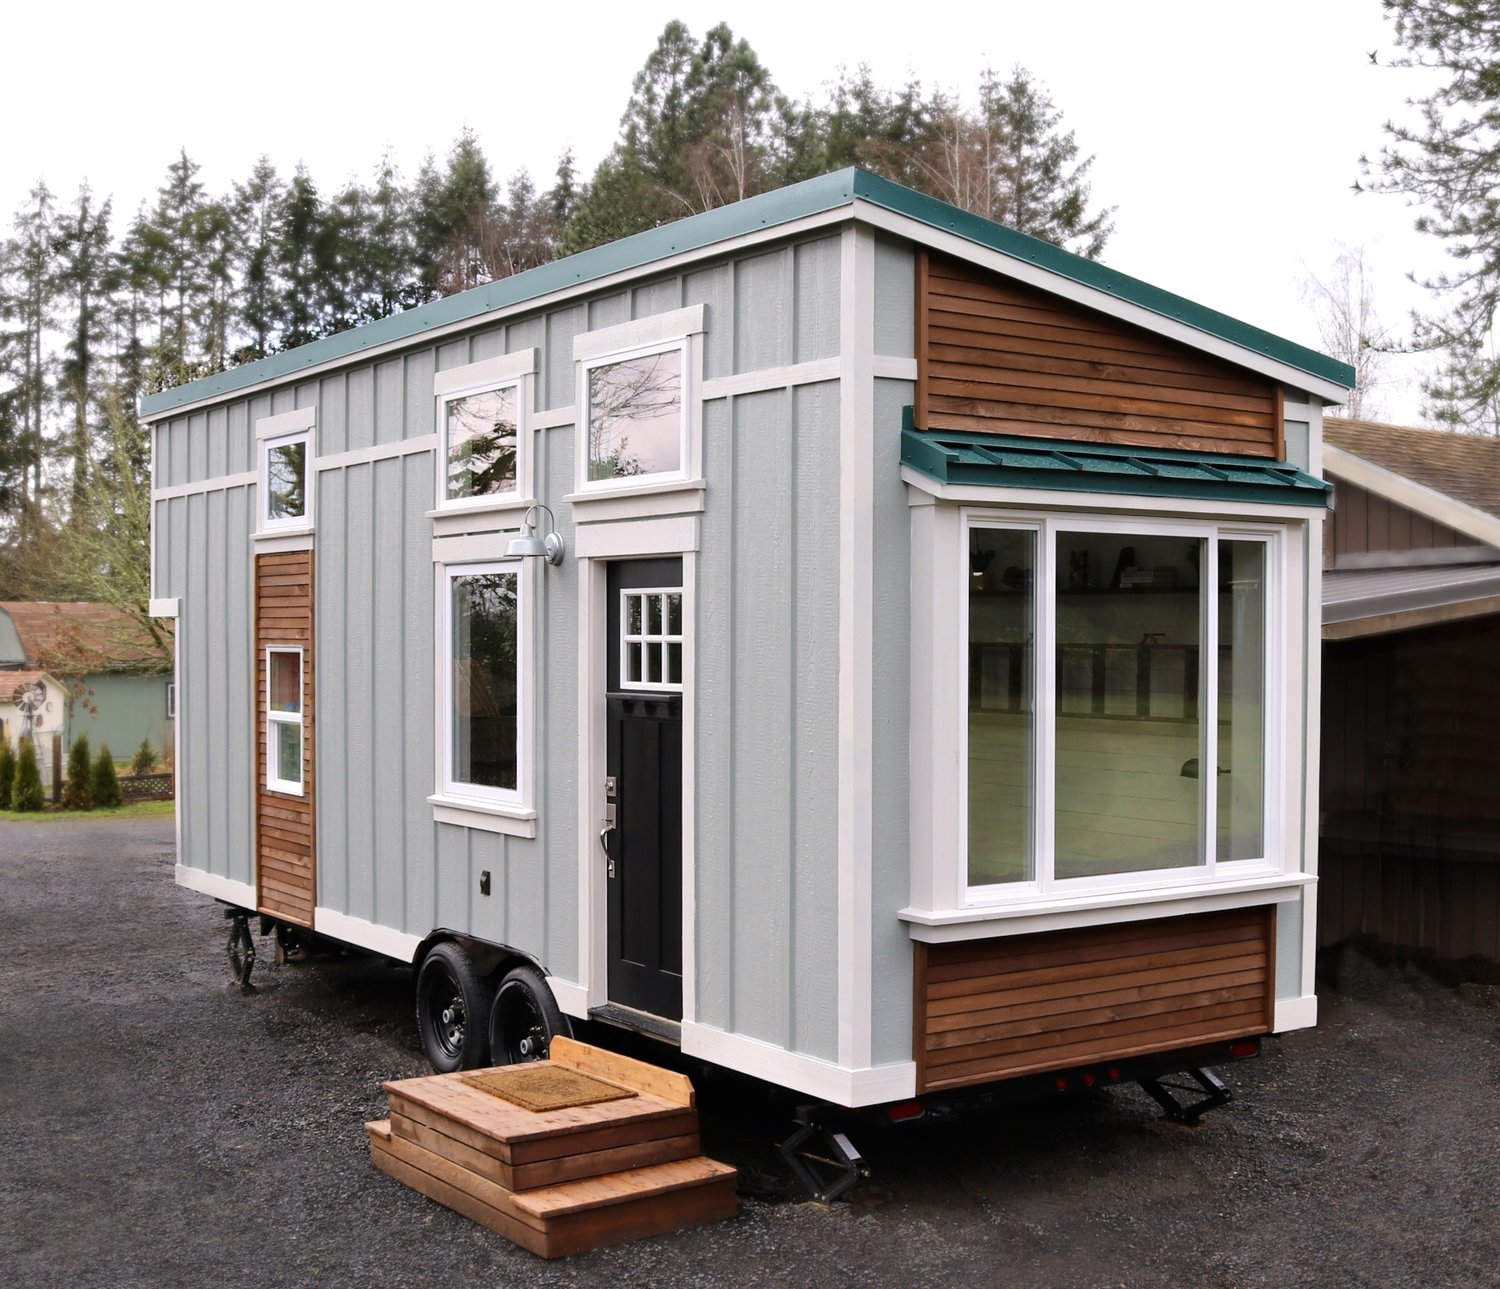 tiny house packs farmhouse chic into 240 square feet curbed. Black Bedroom Furniture Sets. Home Design Ideas